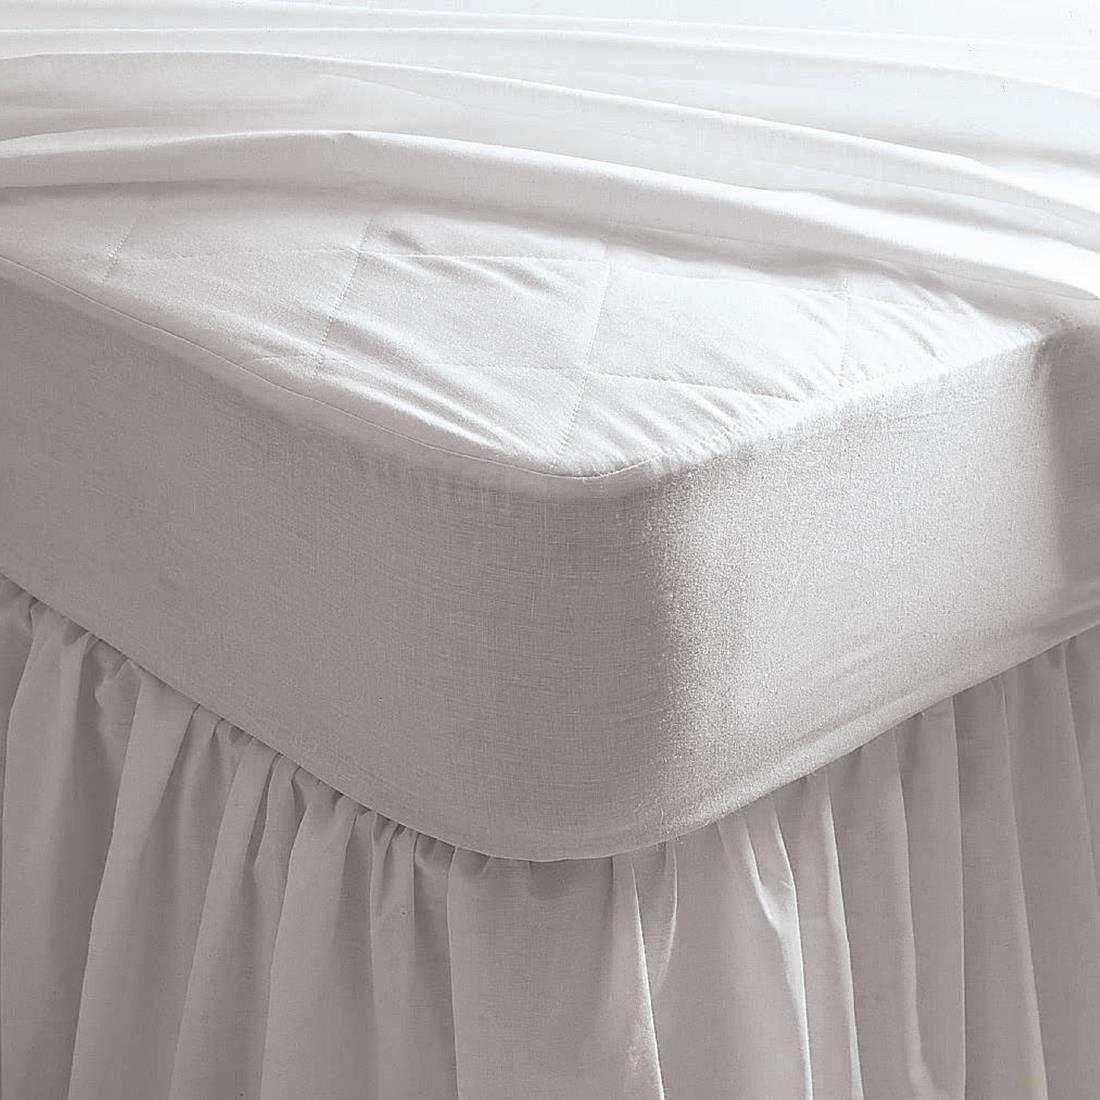 Image of Mitre Comfort Quiltop Mattress Protectors Metric King Size